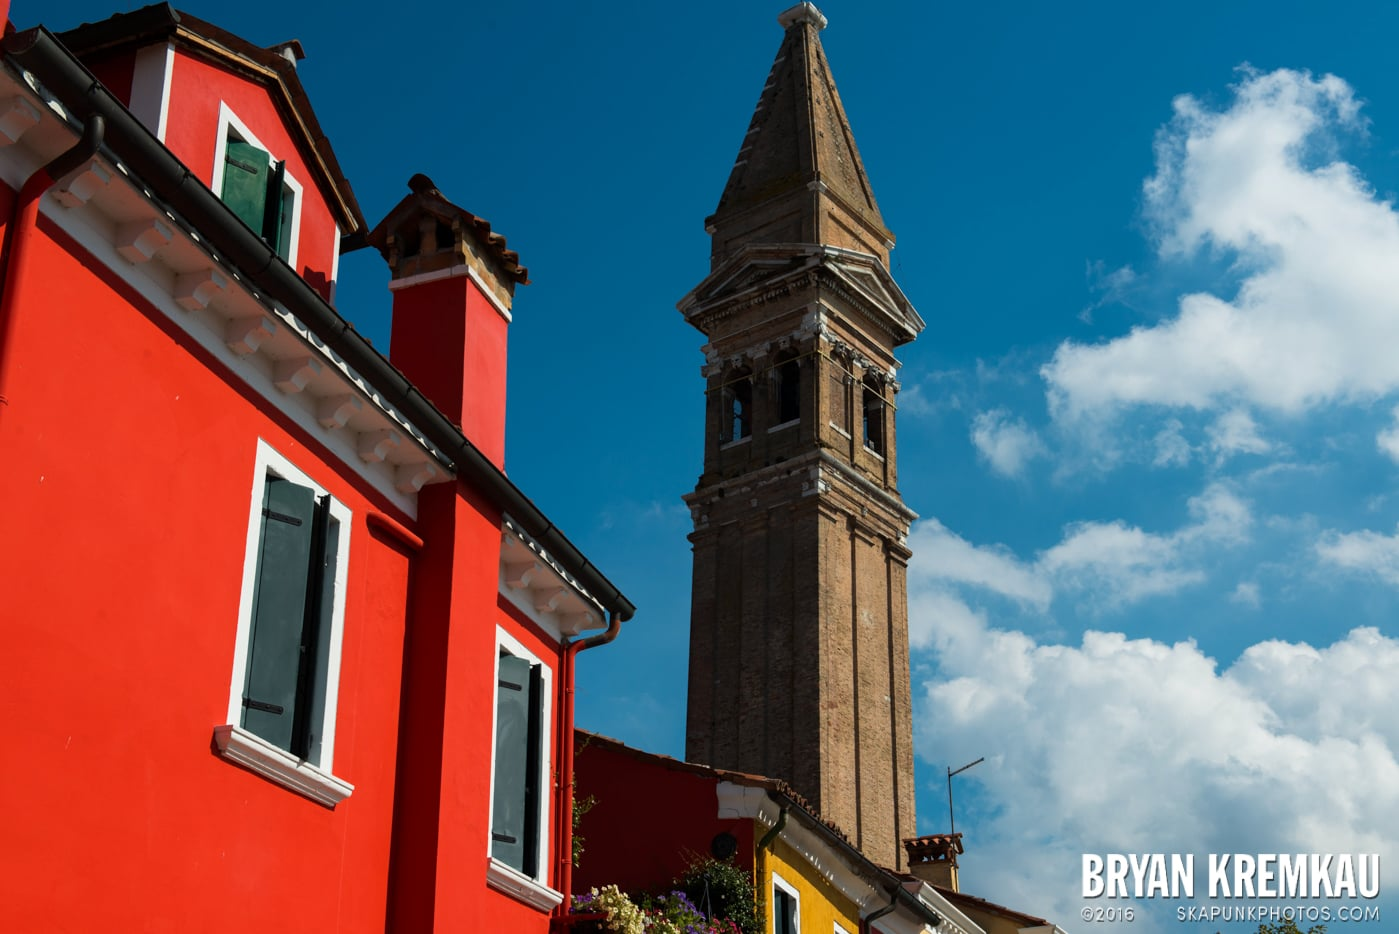 Italy Vacation - Day 6: Murano, Burano, Venice - 9.14.13 (37)